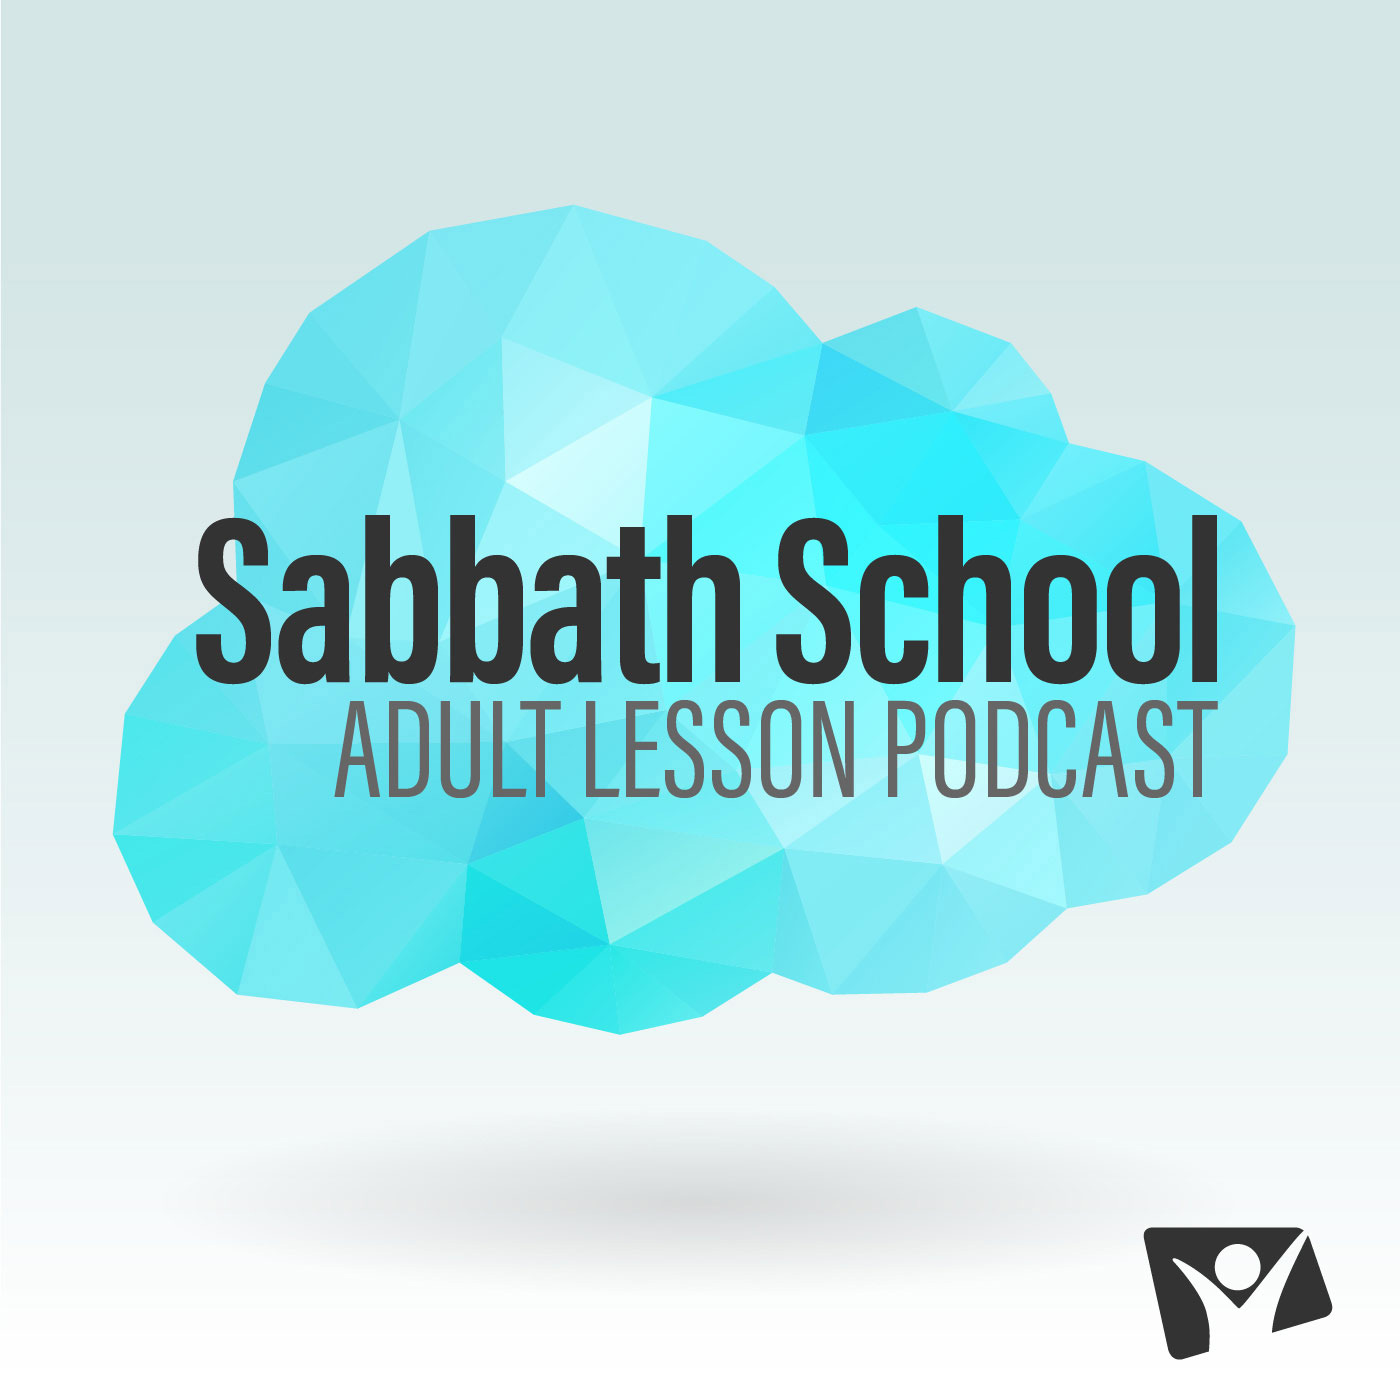 Sabbath school podcast sqr2 duxlze